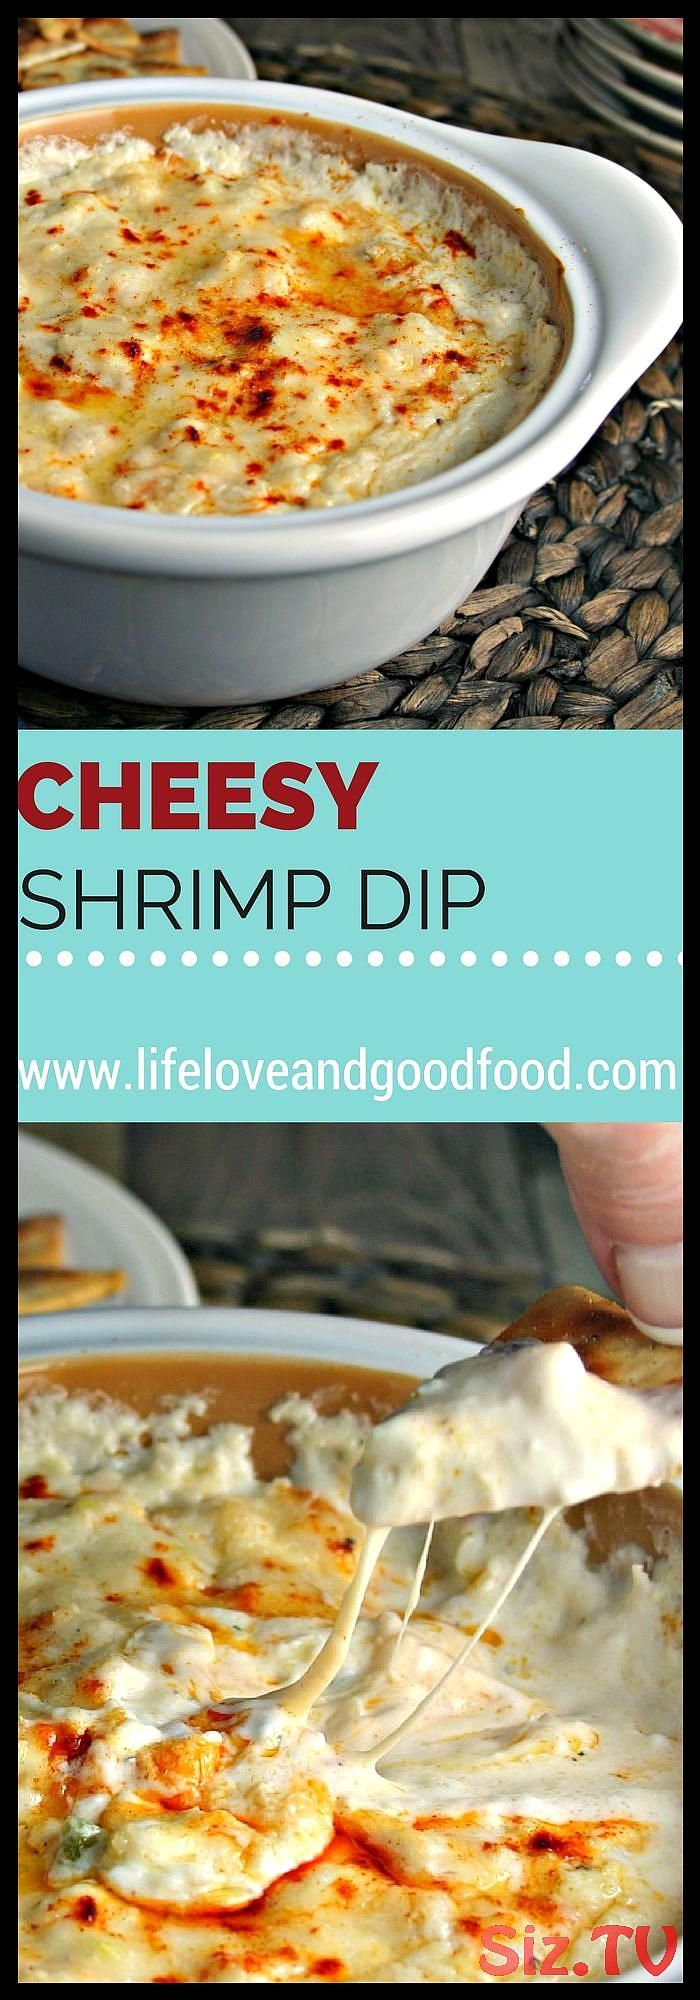 Cheesy Shrimp Dip Cheesy Shrimp Dip Cheesy Shrimp Dip Makes A Delicious Dinner Party Appetizer Serve Hot And Bubbly With Pita Chips A Sliced And Toasted Baguette Or Assorted Crackers Cheesy Shrimp Dip Life Love And Good Food